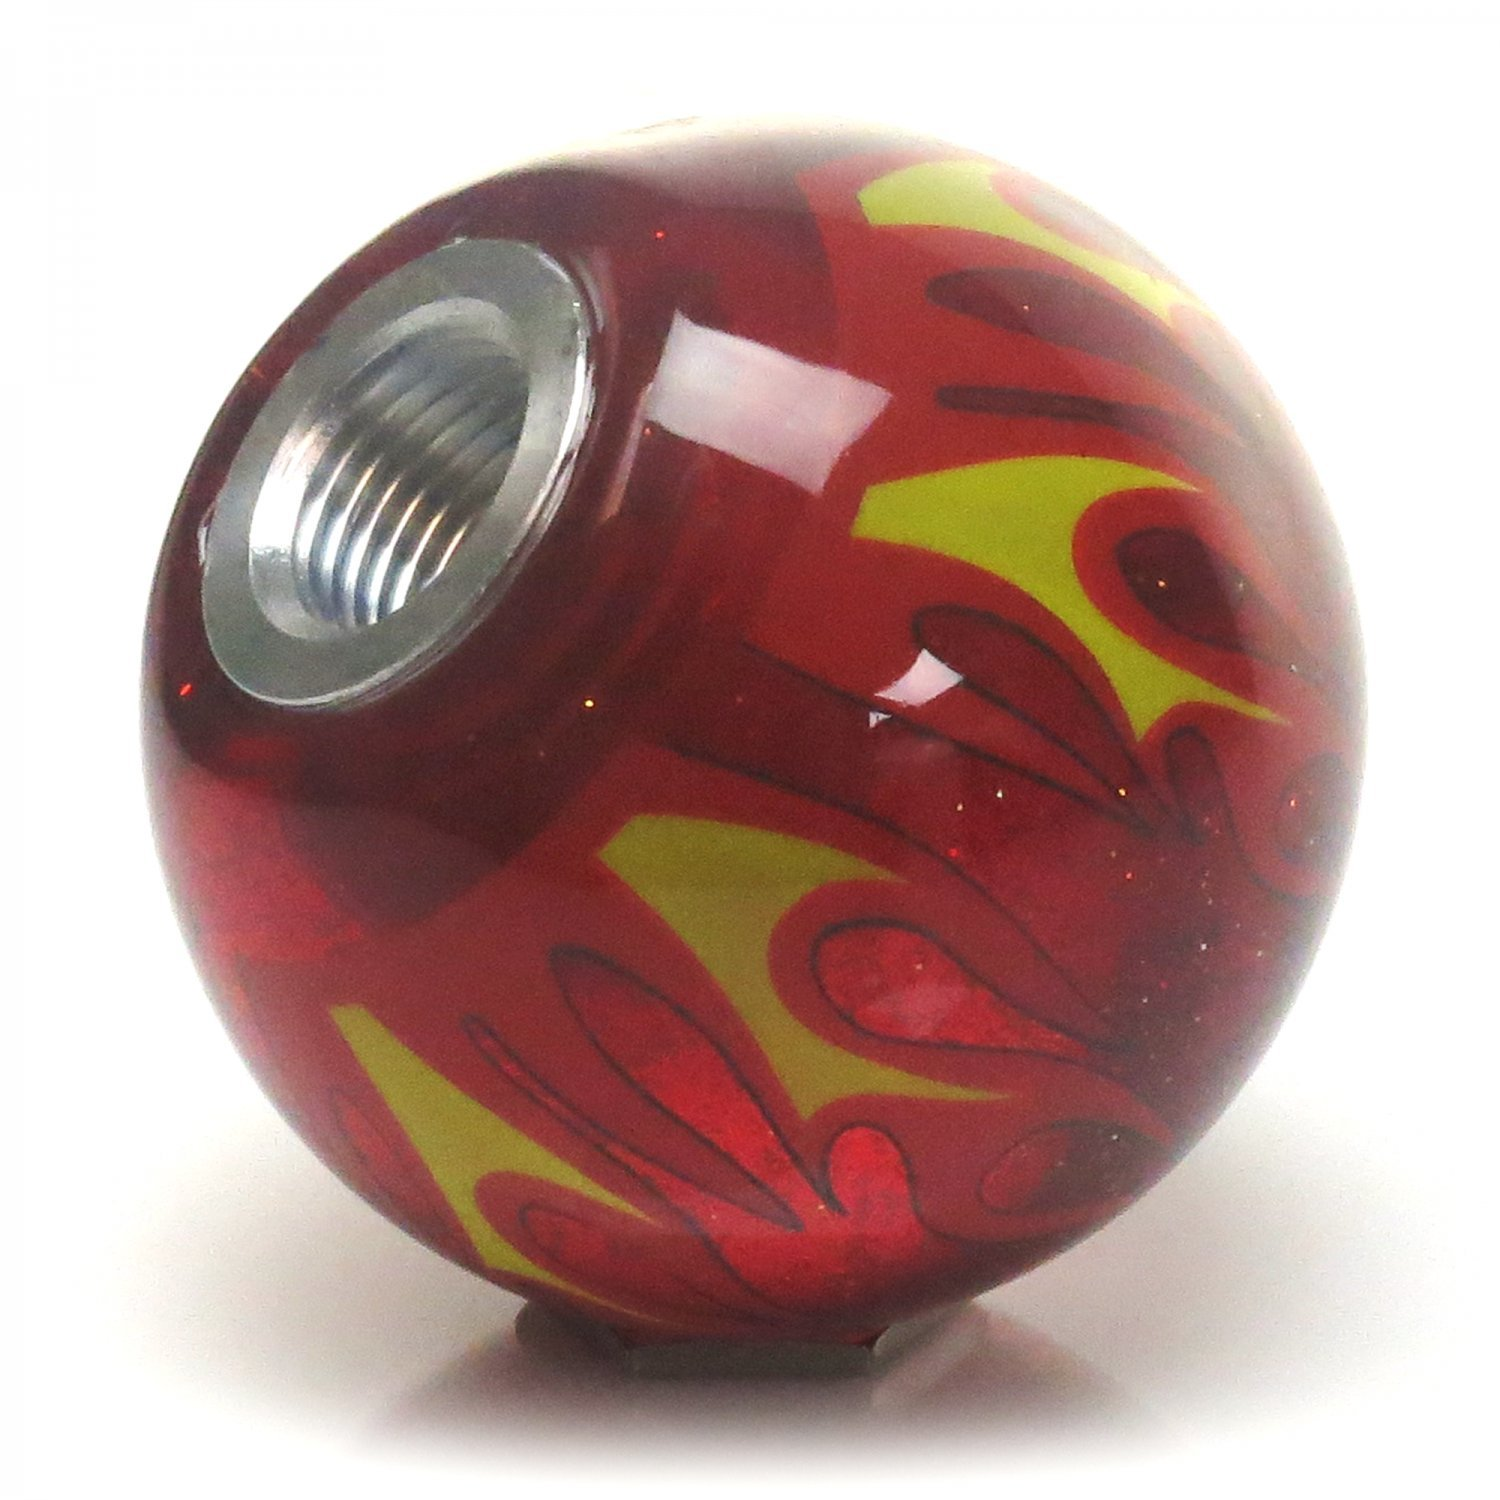 American Shifter 242902 Red Flame Metal Flake Shift Knob with M16 x 1.5 Insert White Shift Pattern 36n